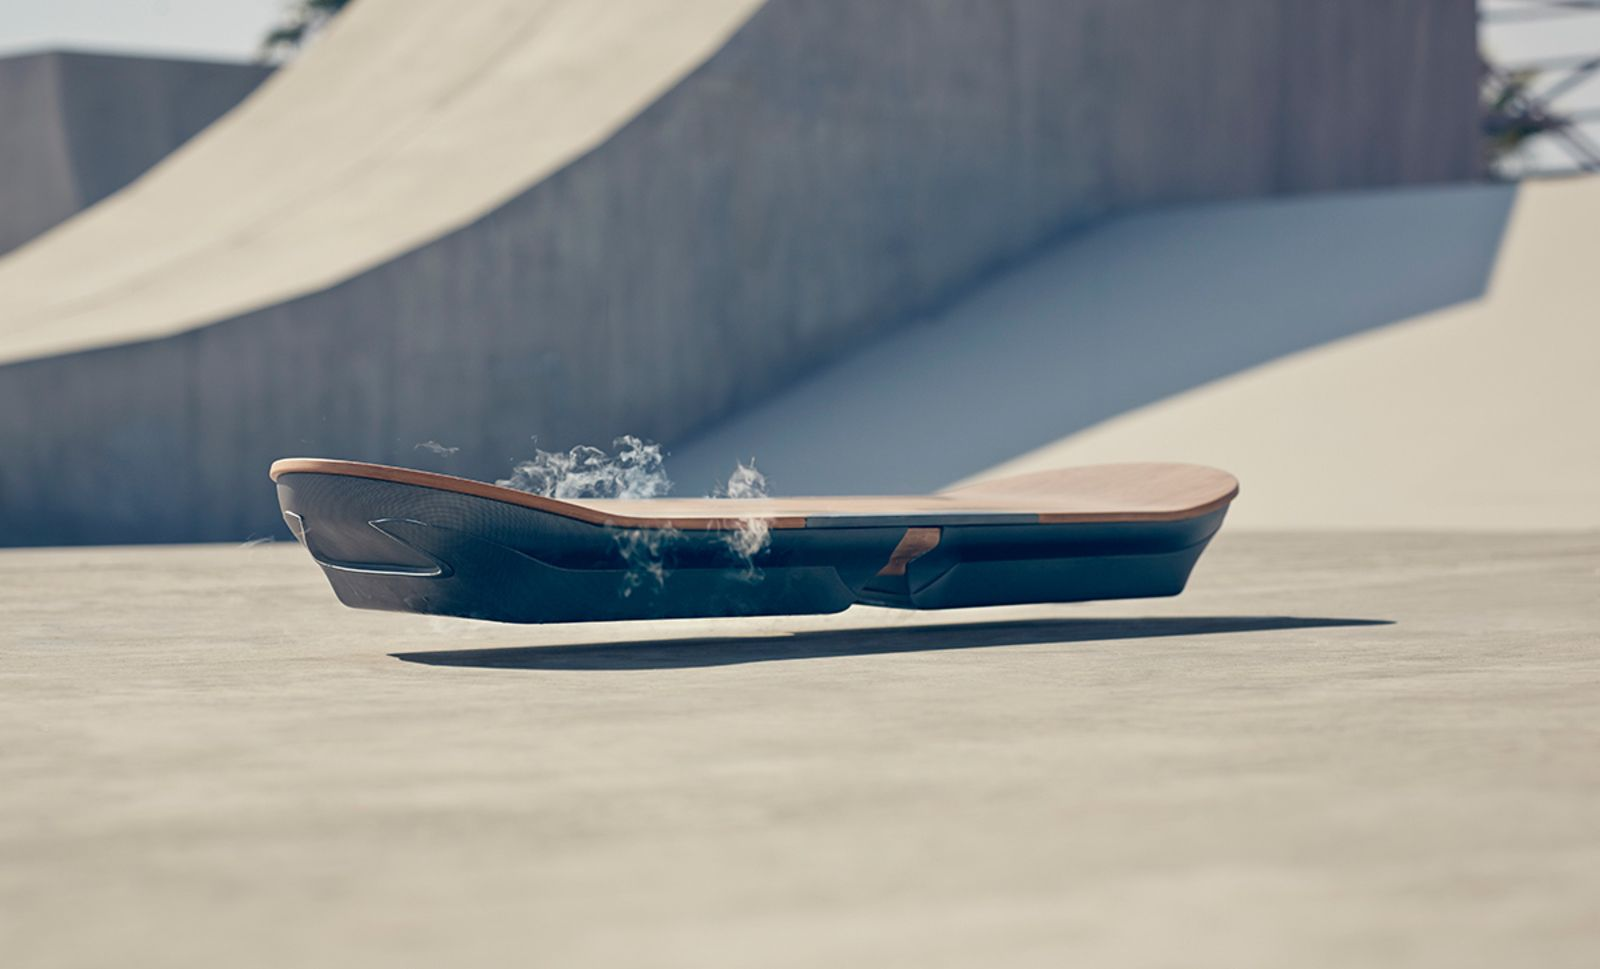 Lexus Unveils a Working Hoverboard - Cool Hunting. Similar to the technology seen in many of Japan's blistering bullet trains, Lexus employs magnetic levitation combined with superconductors to create a frictionless buffer zone between the ground and board, allowing it to effortlessly float on air. Due to the system's extremely high temperatures, liquid nitrogen is used to continuously keep it cool